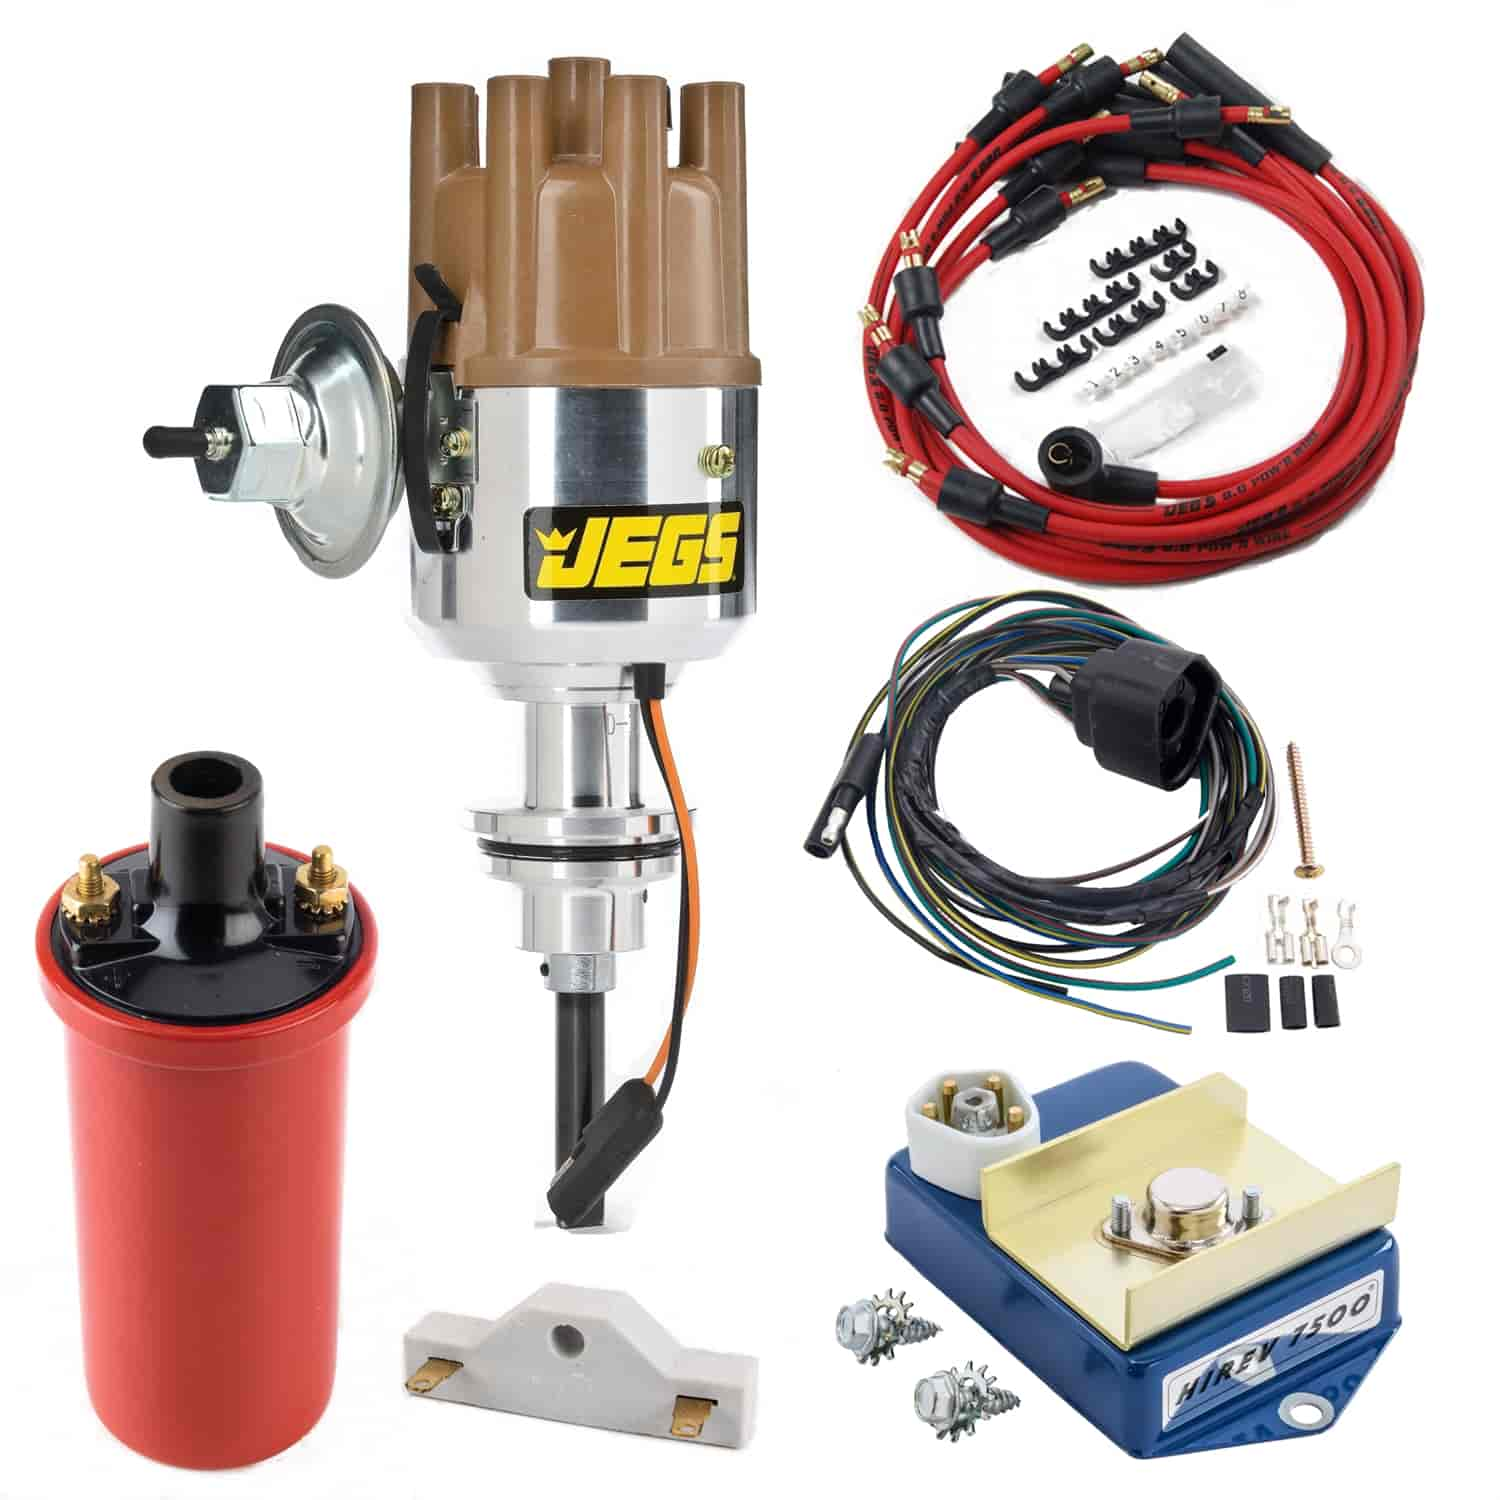 JEGS Performance Products 40500K1 - JEGS Mopar Electronic Ignition Conversion Kits with Forged Distributors